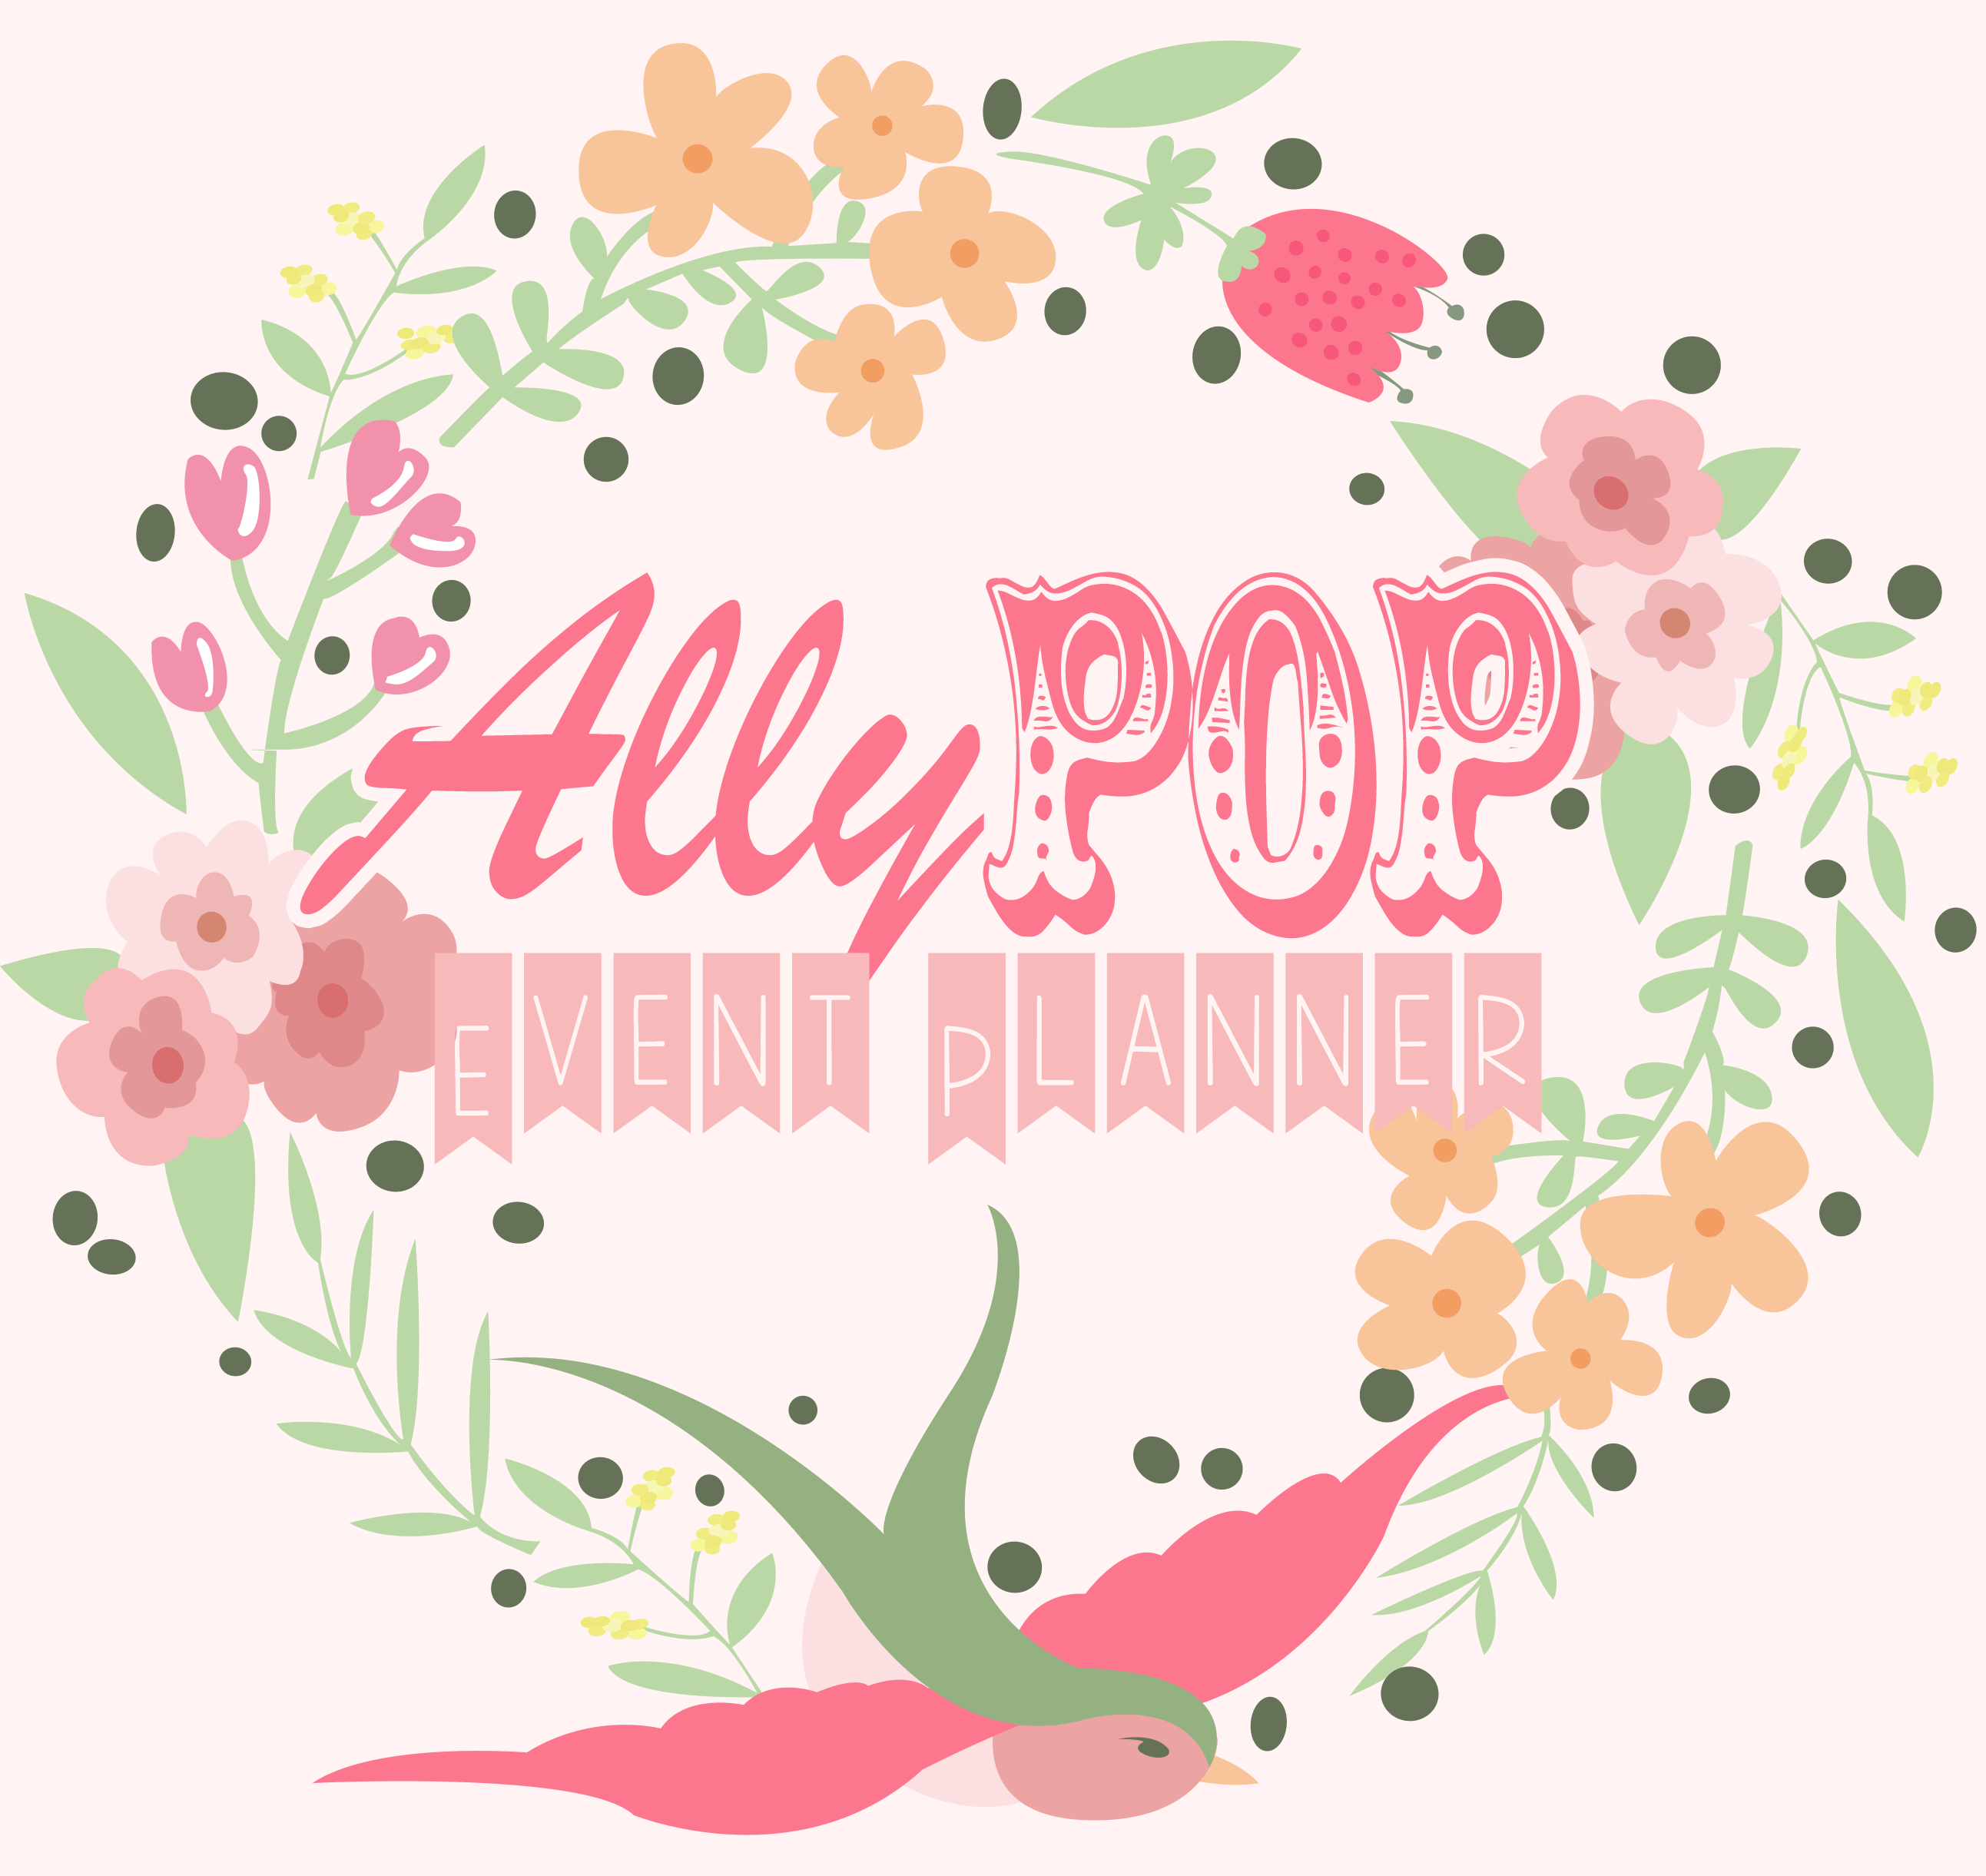 Ally POP Event Planner